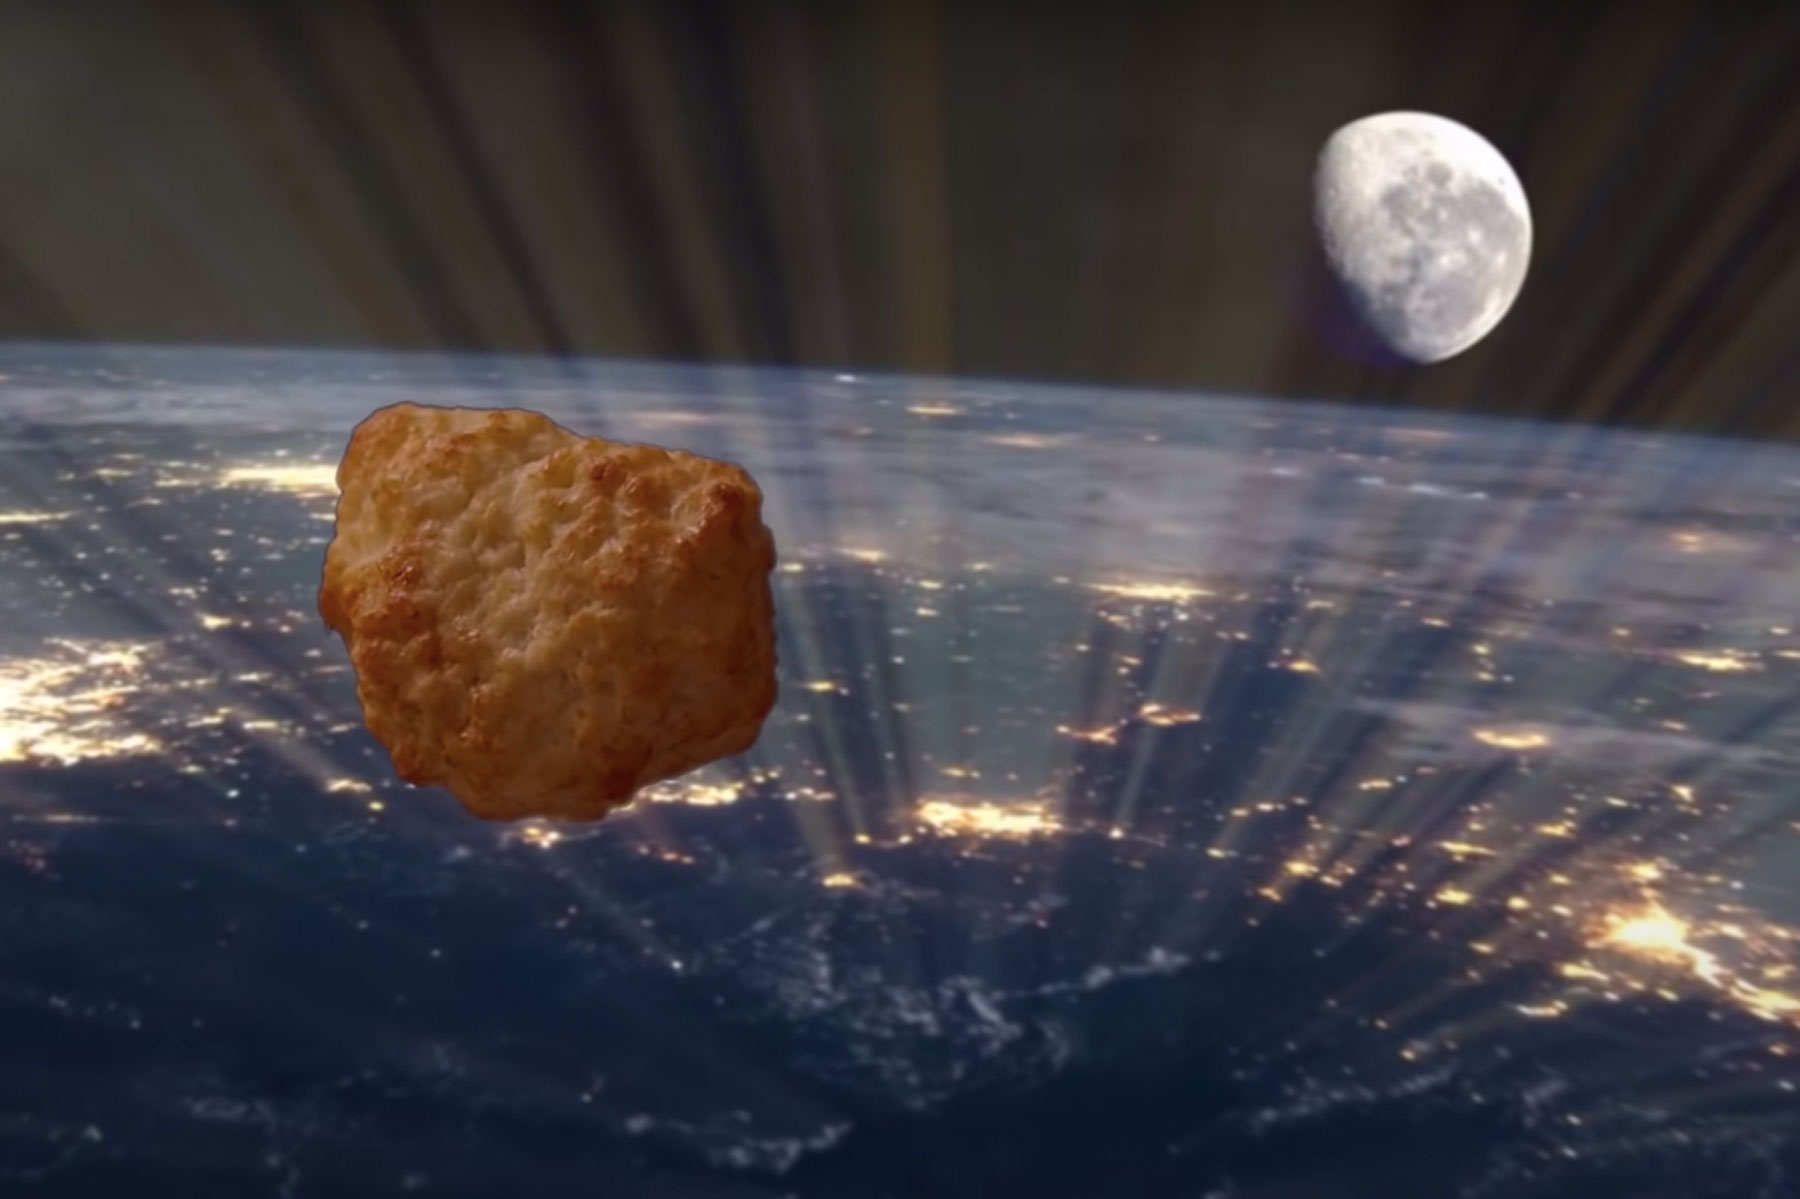 rendering of a chicken nugget floating in space